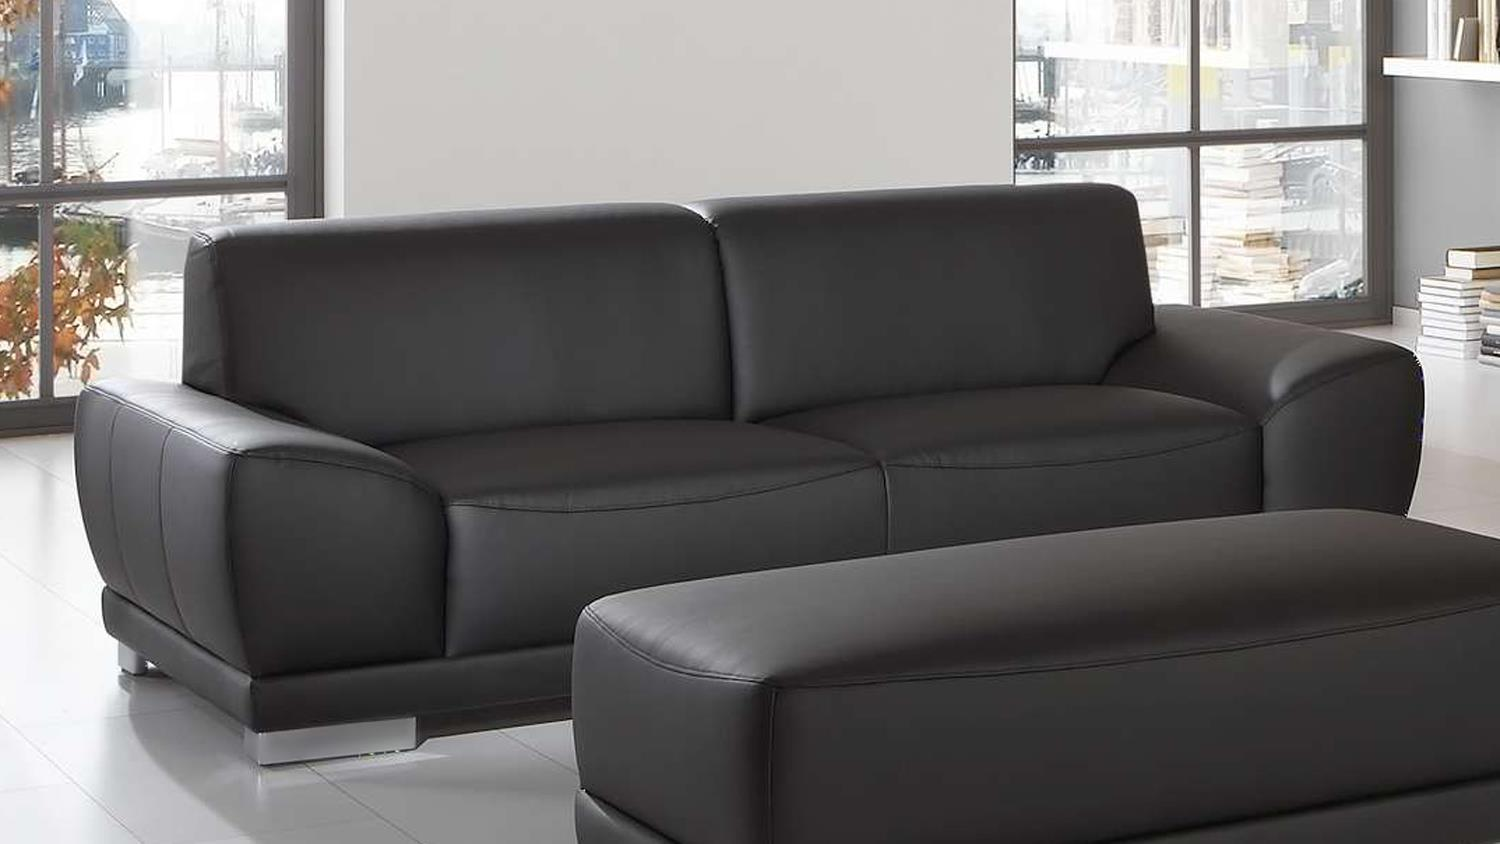 sofa manila 3 sitzer in schwarz mit federkern und. Black Bedroom Furniture Sets. Home Design Ideas